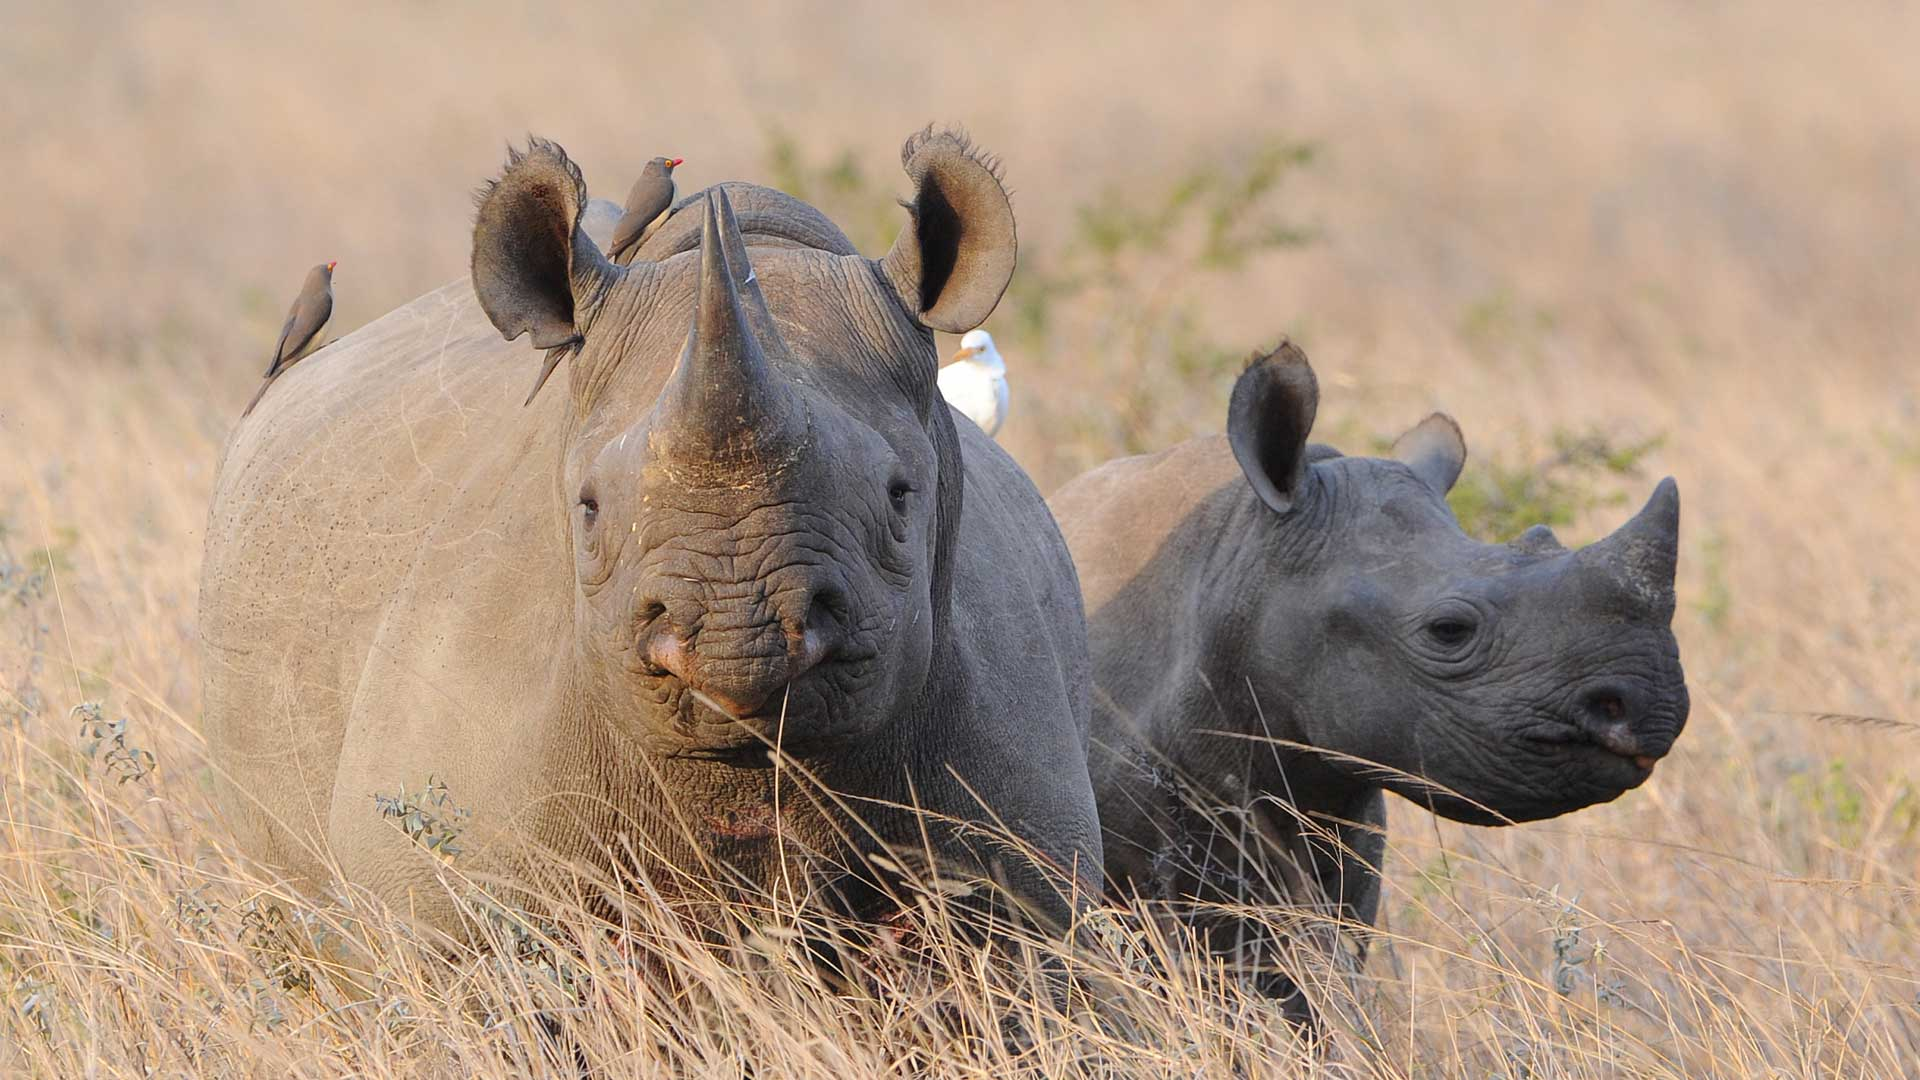 Black Rhinoceros population